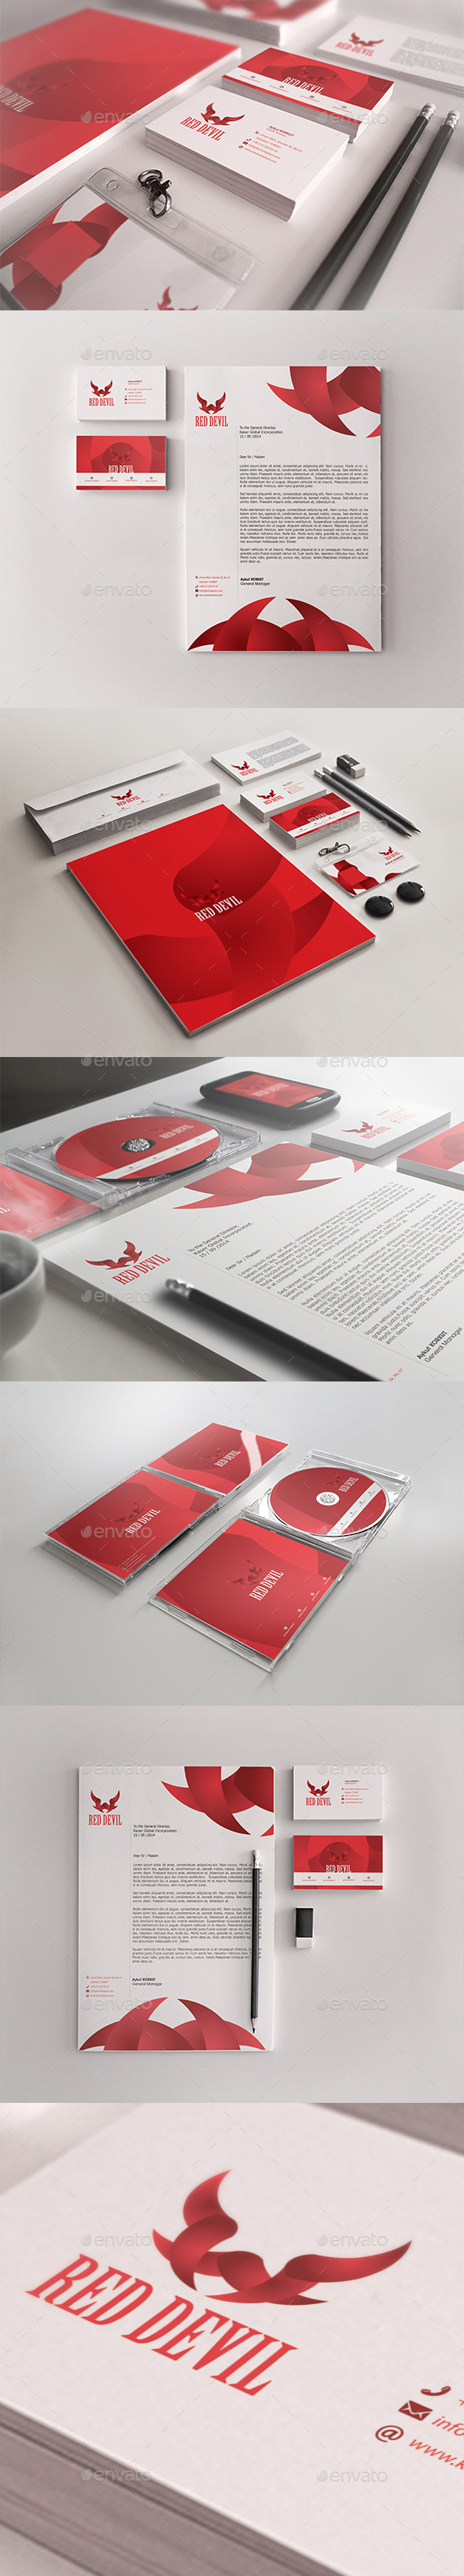 GraphicRiver Red Devil Corporate Identity Package 9370596